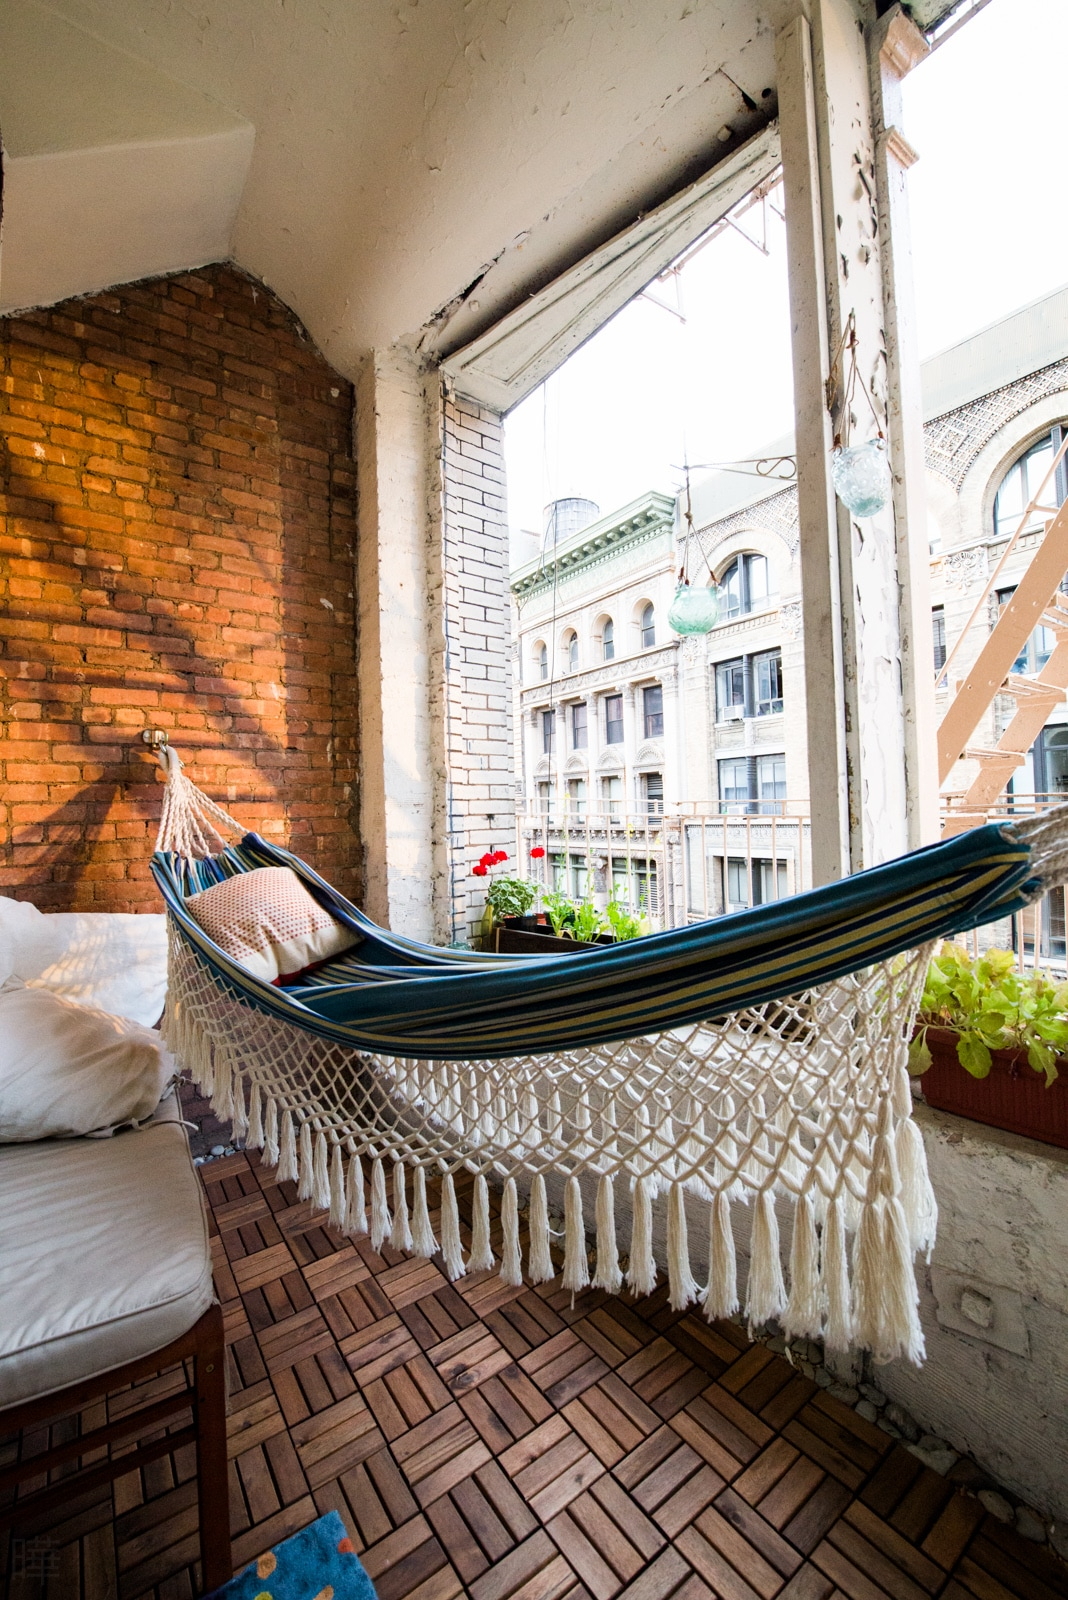 this bed's good for daydreams